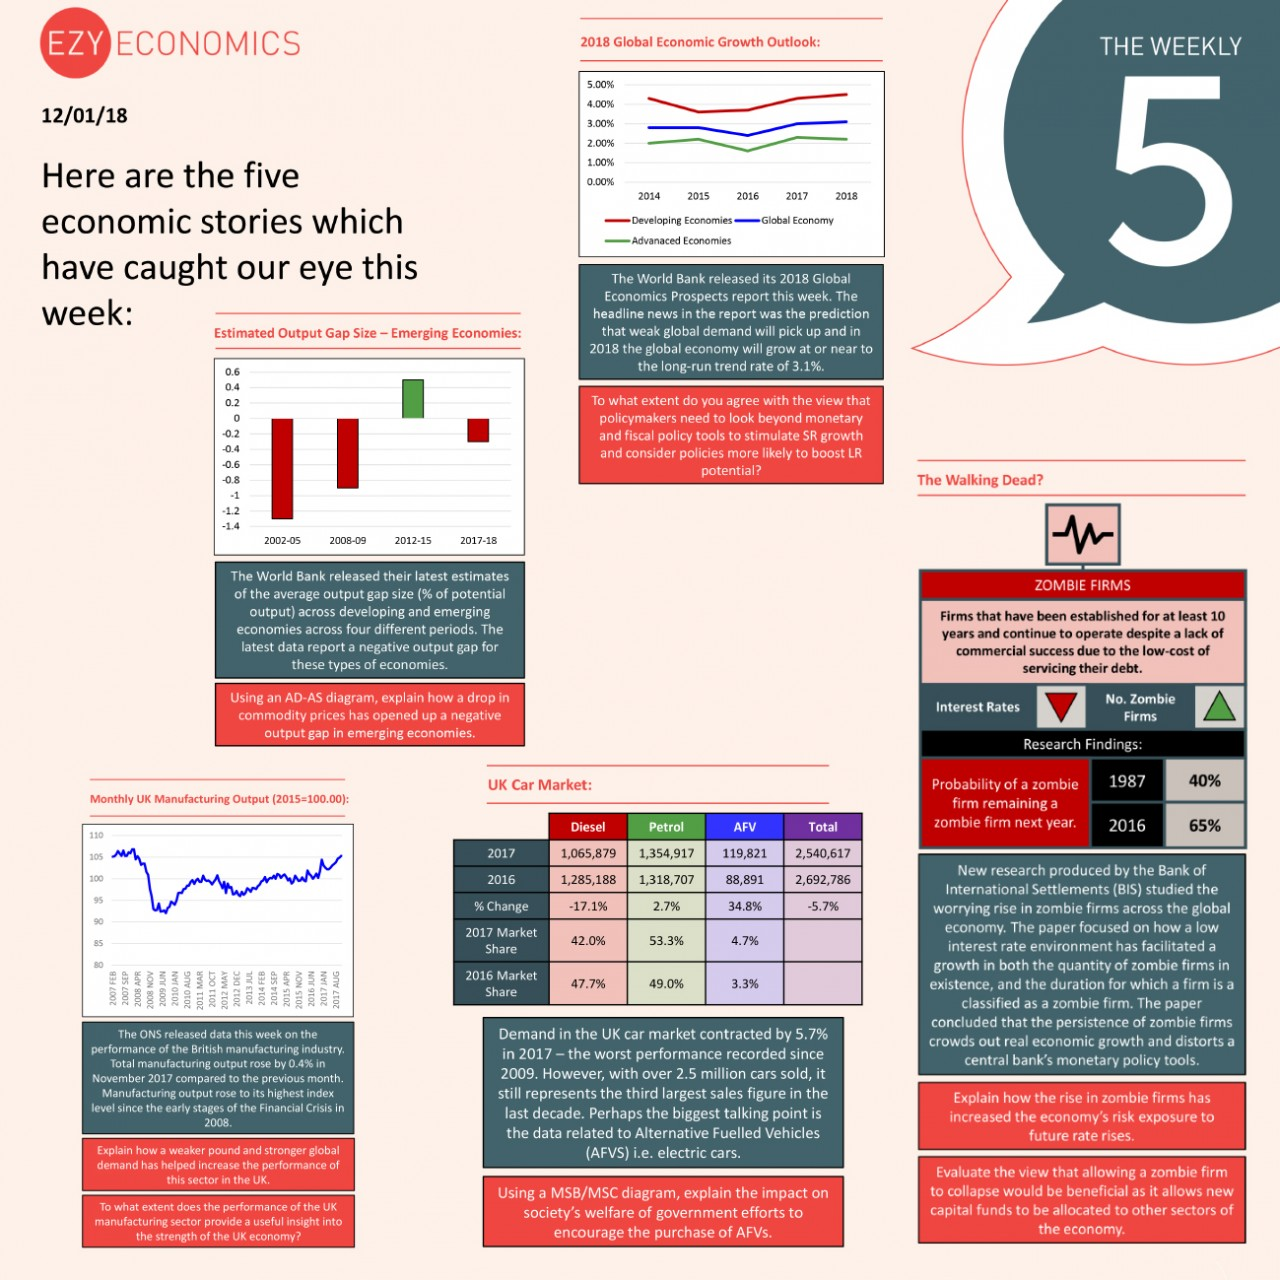 The Economics Weekly 5 - 12th January 2018